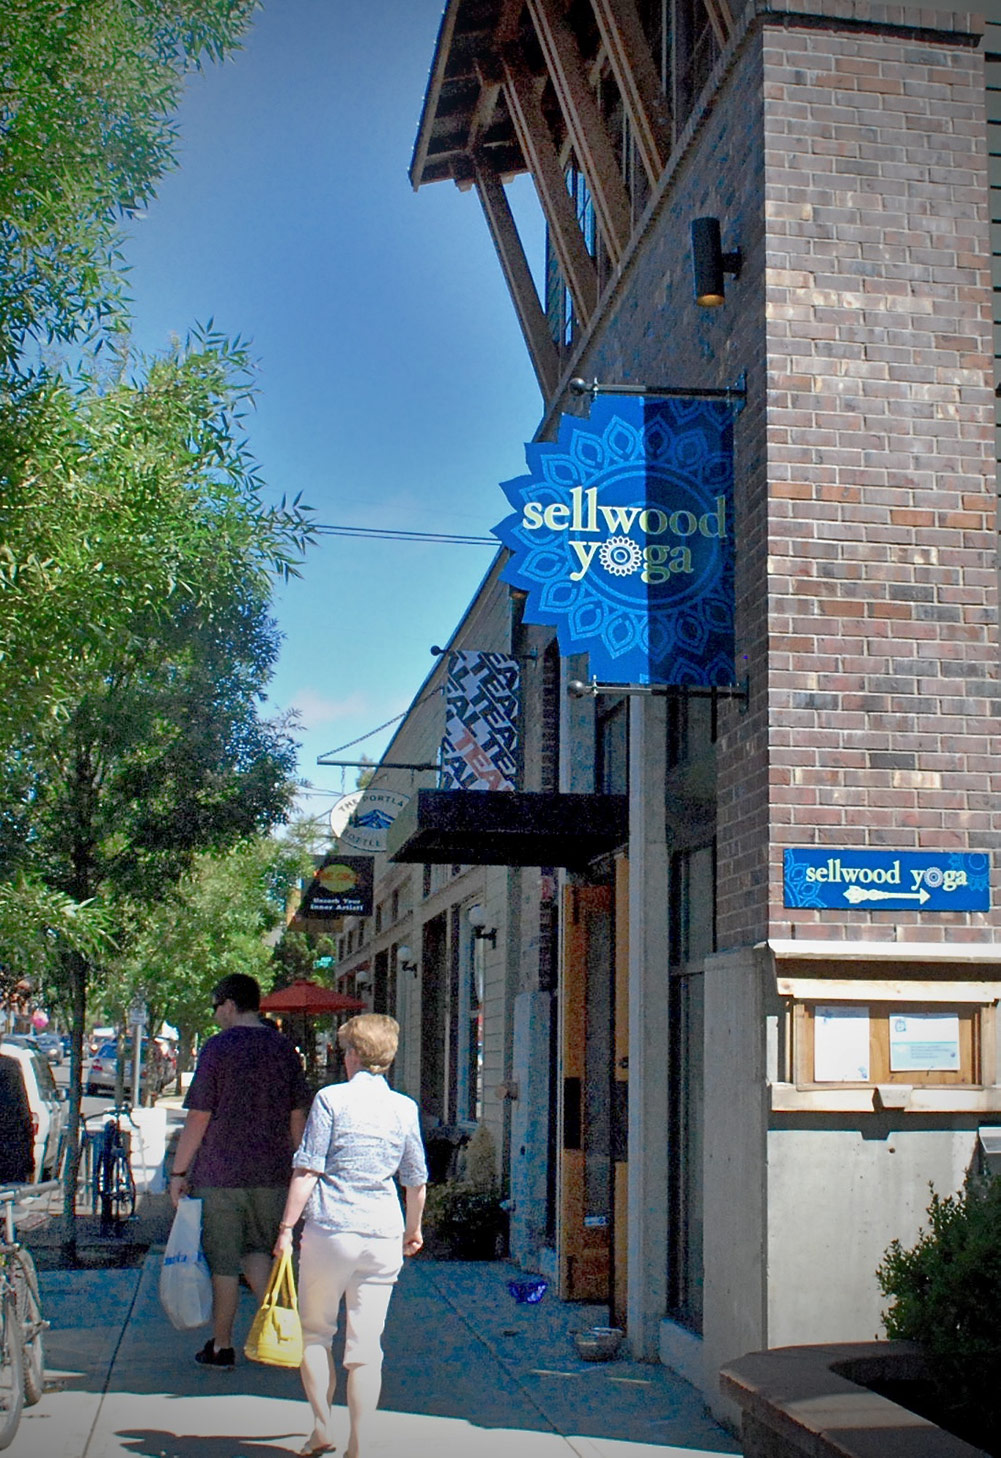 Shops and restaurants dot the streets of Sellwood-Moreland.